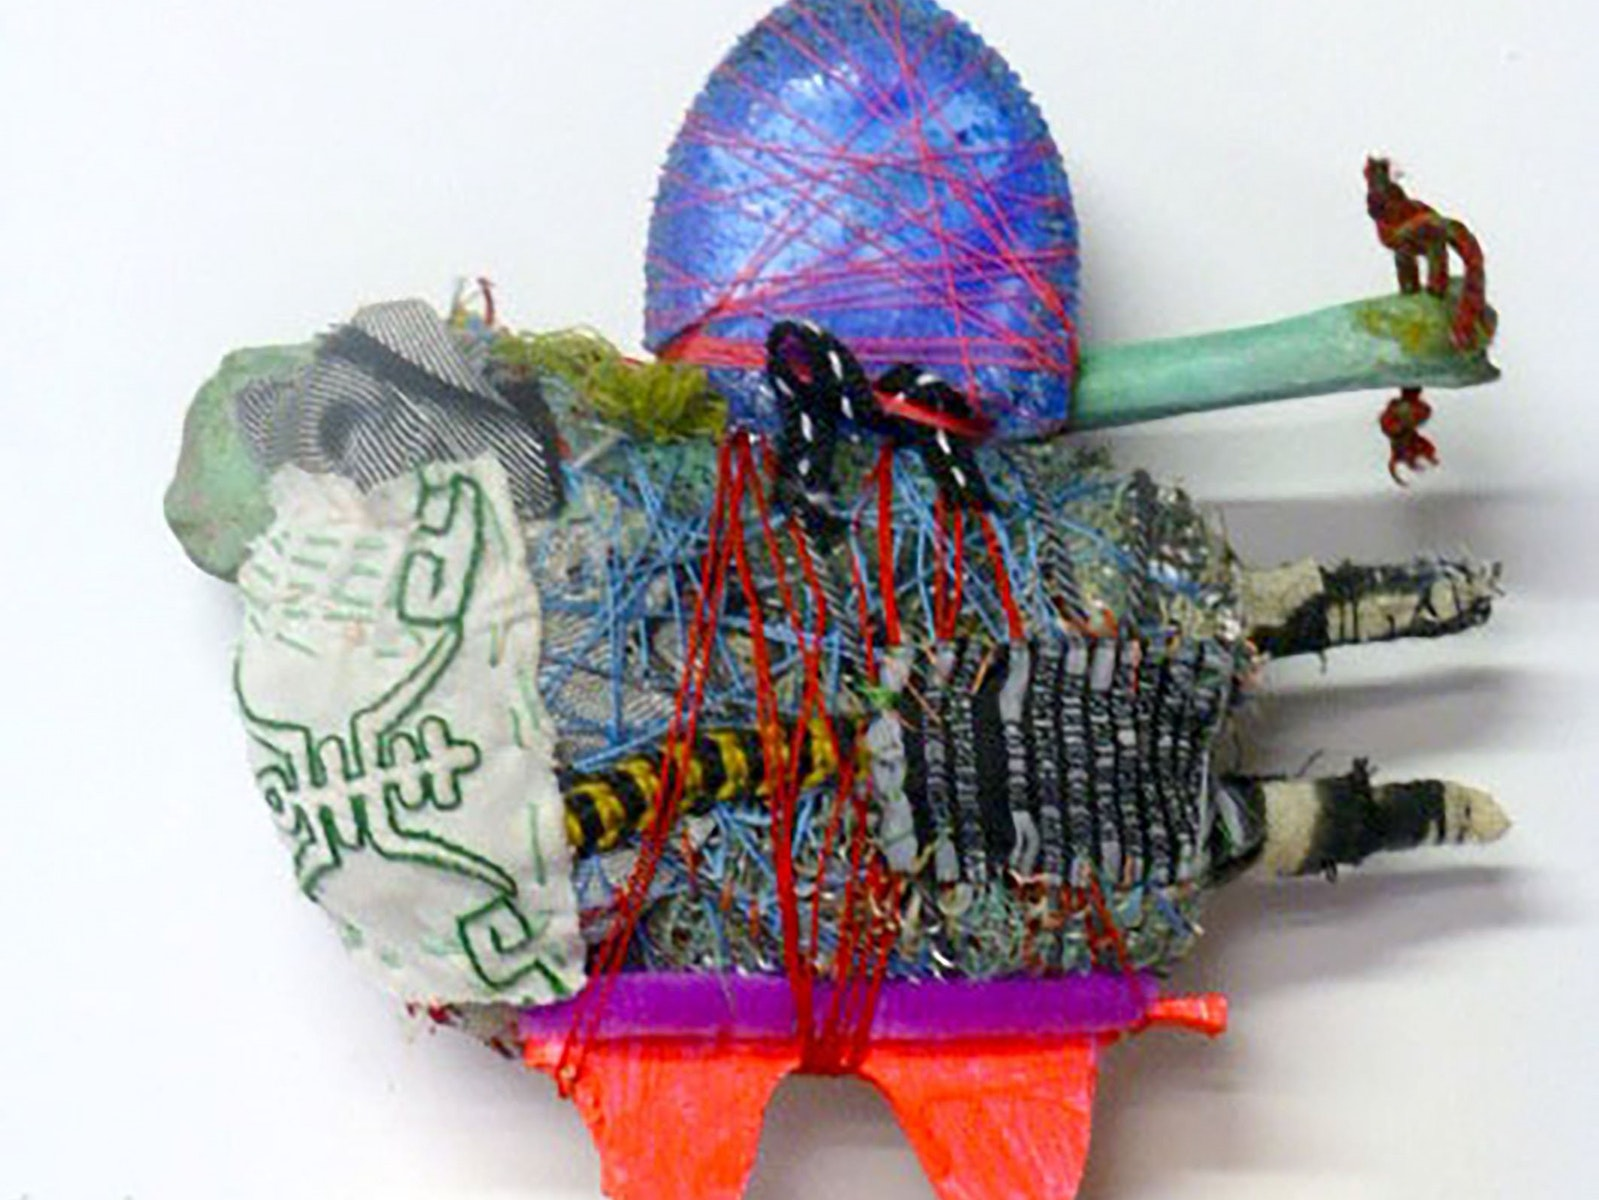 Susie Losch, Teasel, textile paraphernalia, teasel, found objects, 2016, 30 x 30cm overall, Entry fr